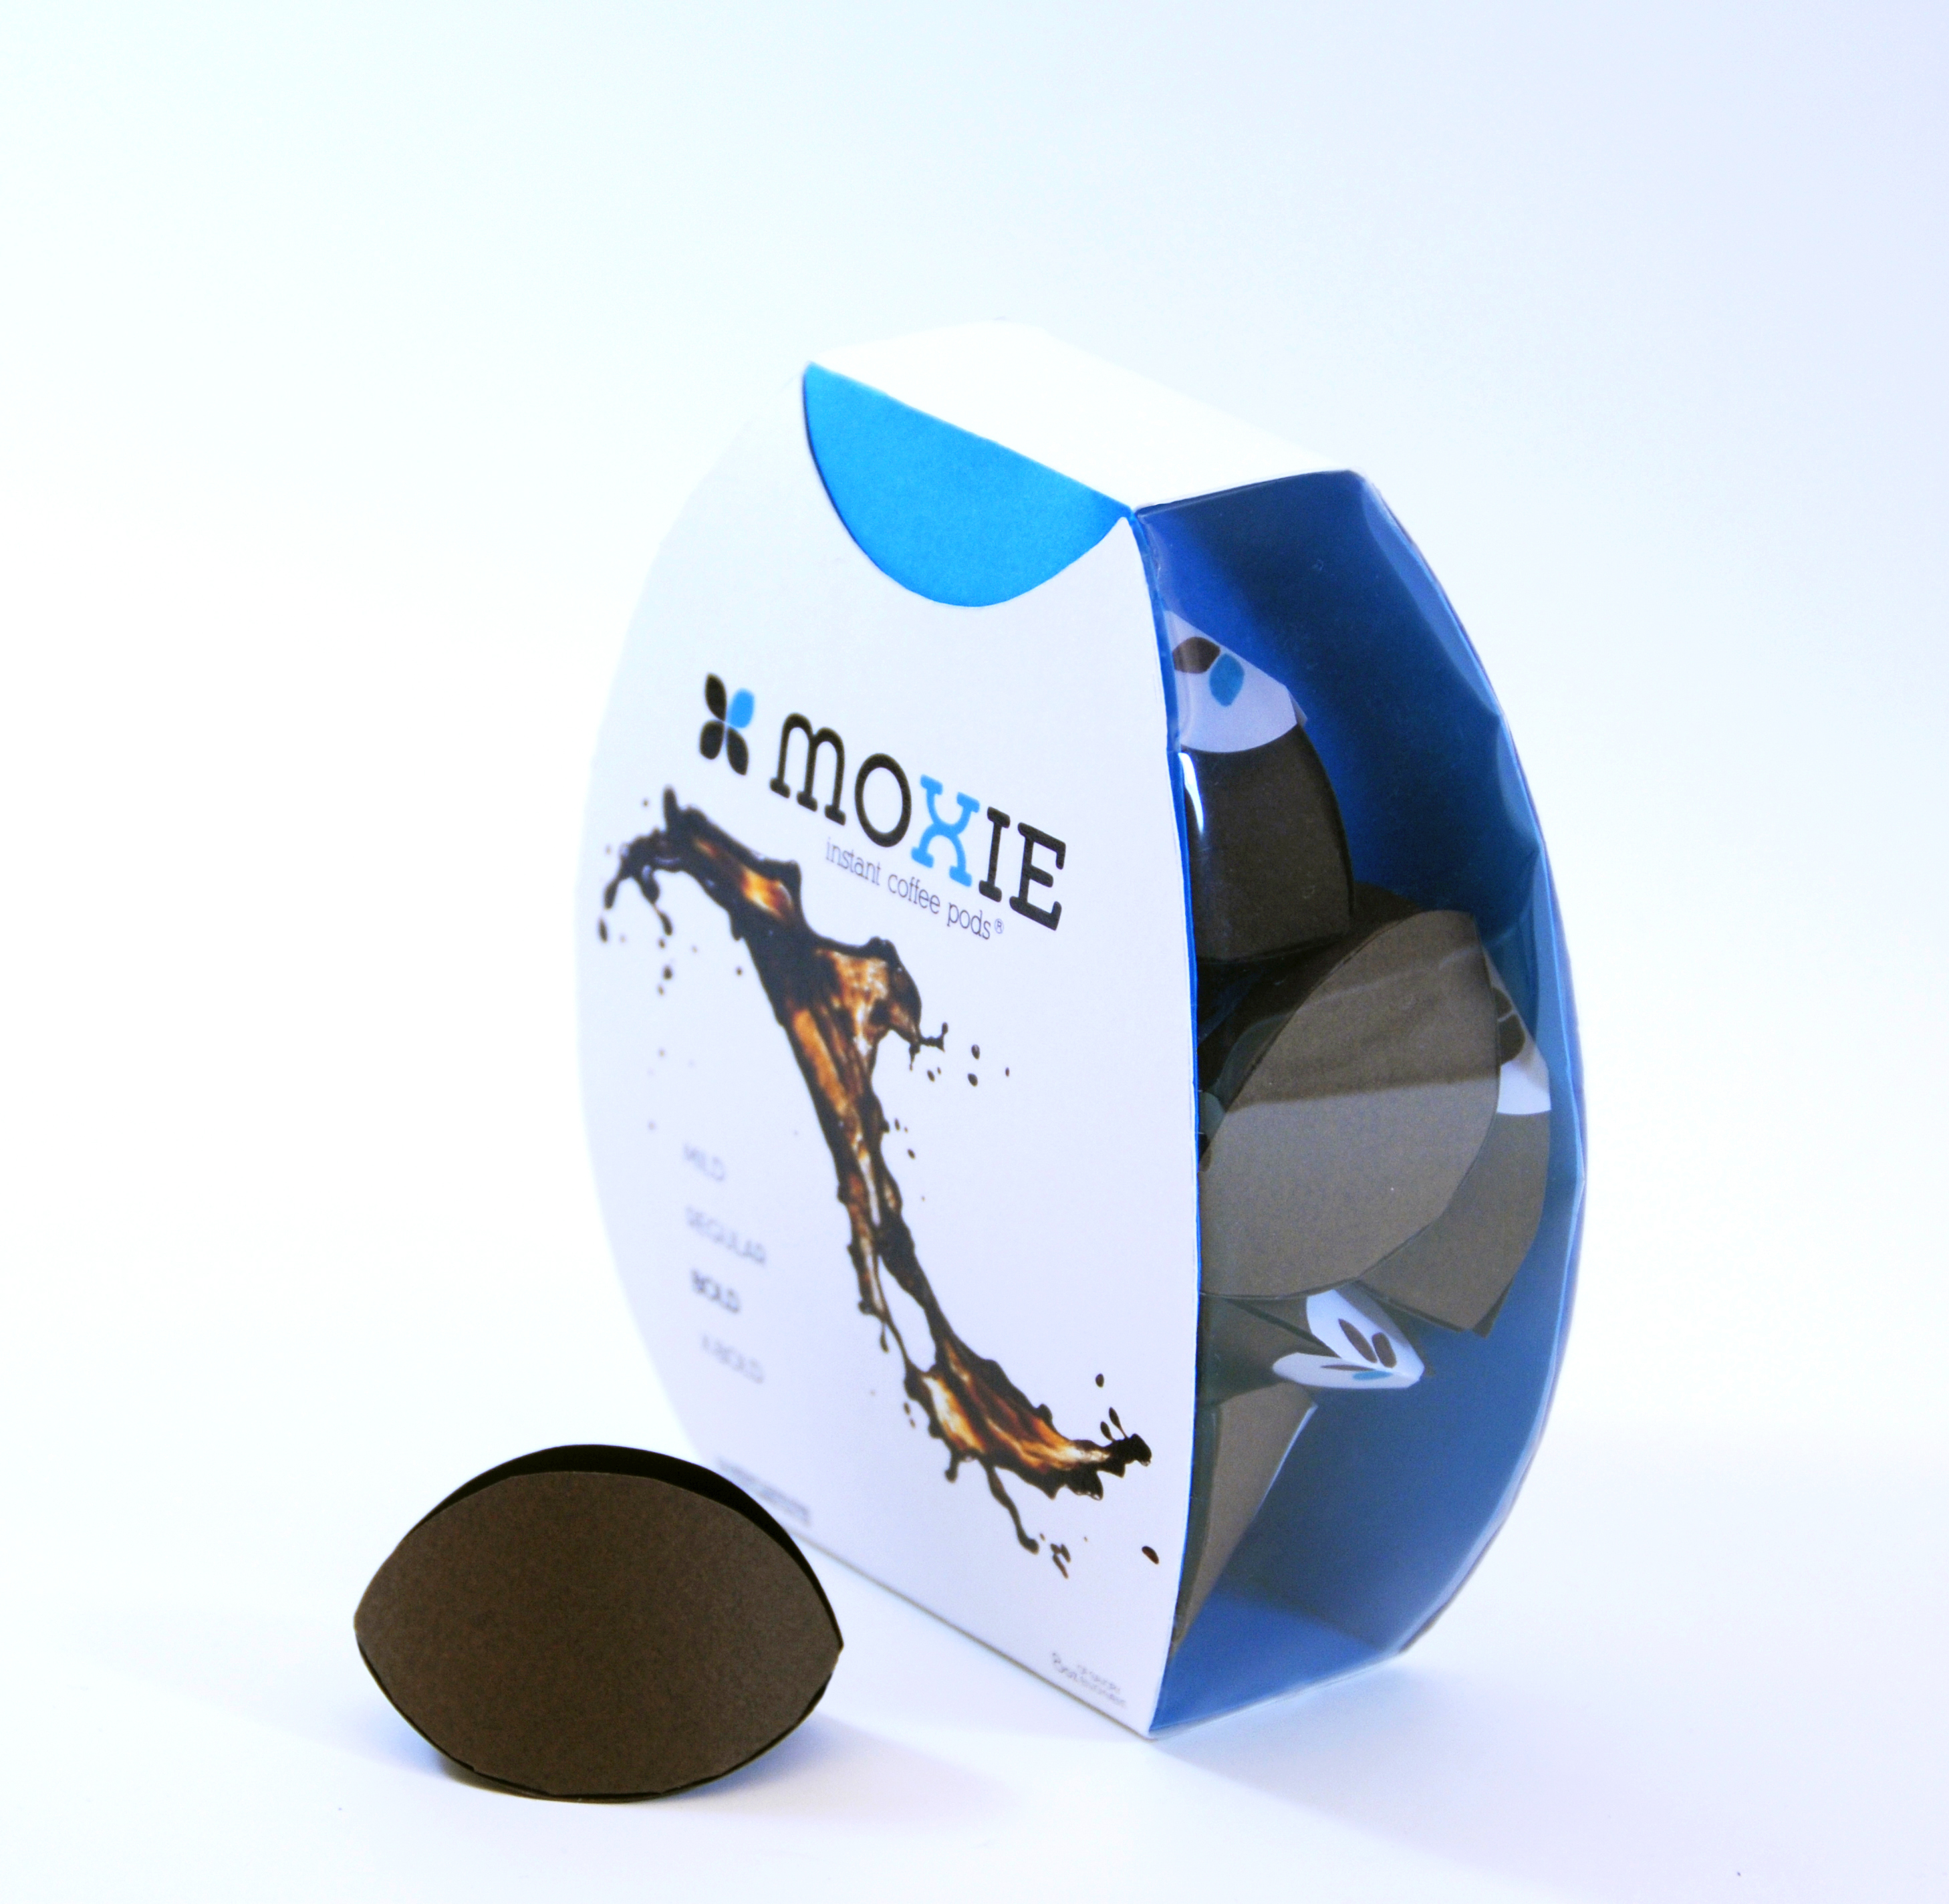 Moxie Coffee Packaging